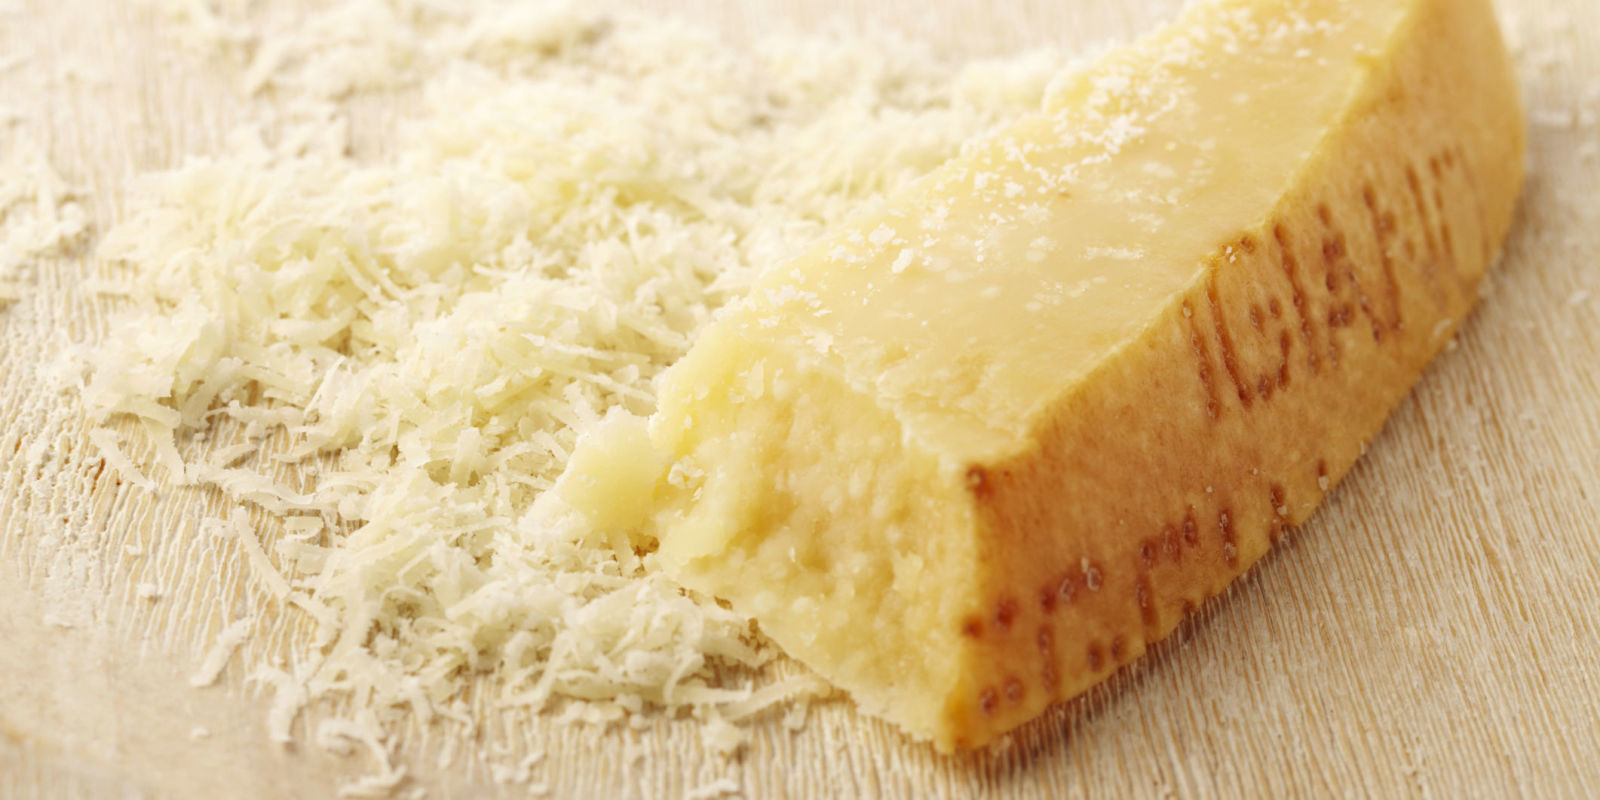 Your Grated Parmesan Could Actually Be Wood Pulp